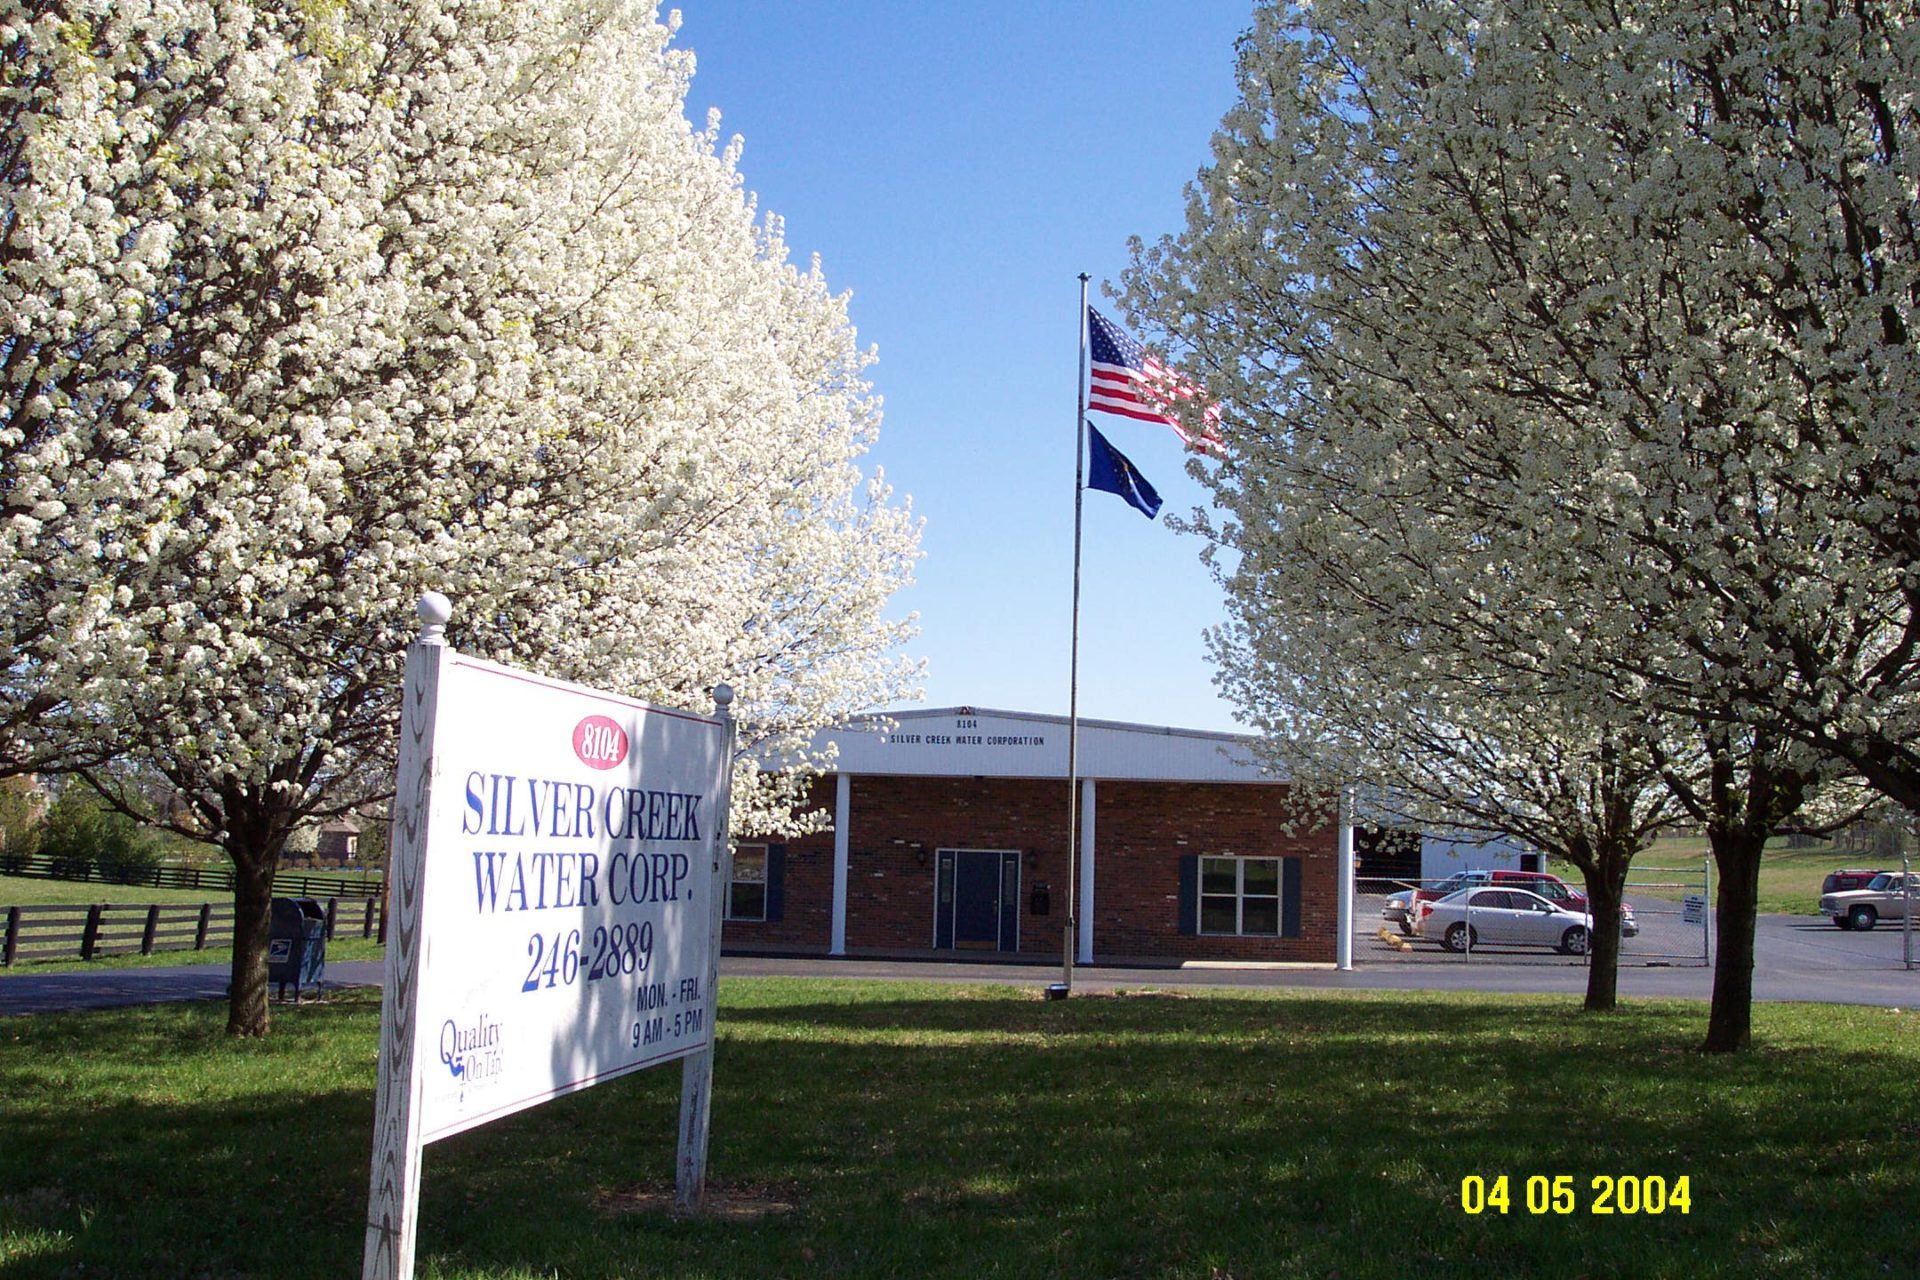 https://silvercreekwater.org/wp-content/uploads/2020/04/Office-Pic-2004-1-scaled.jpg